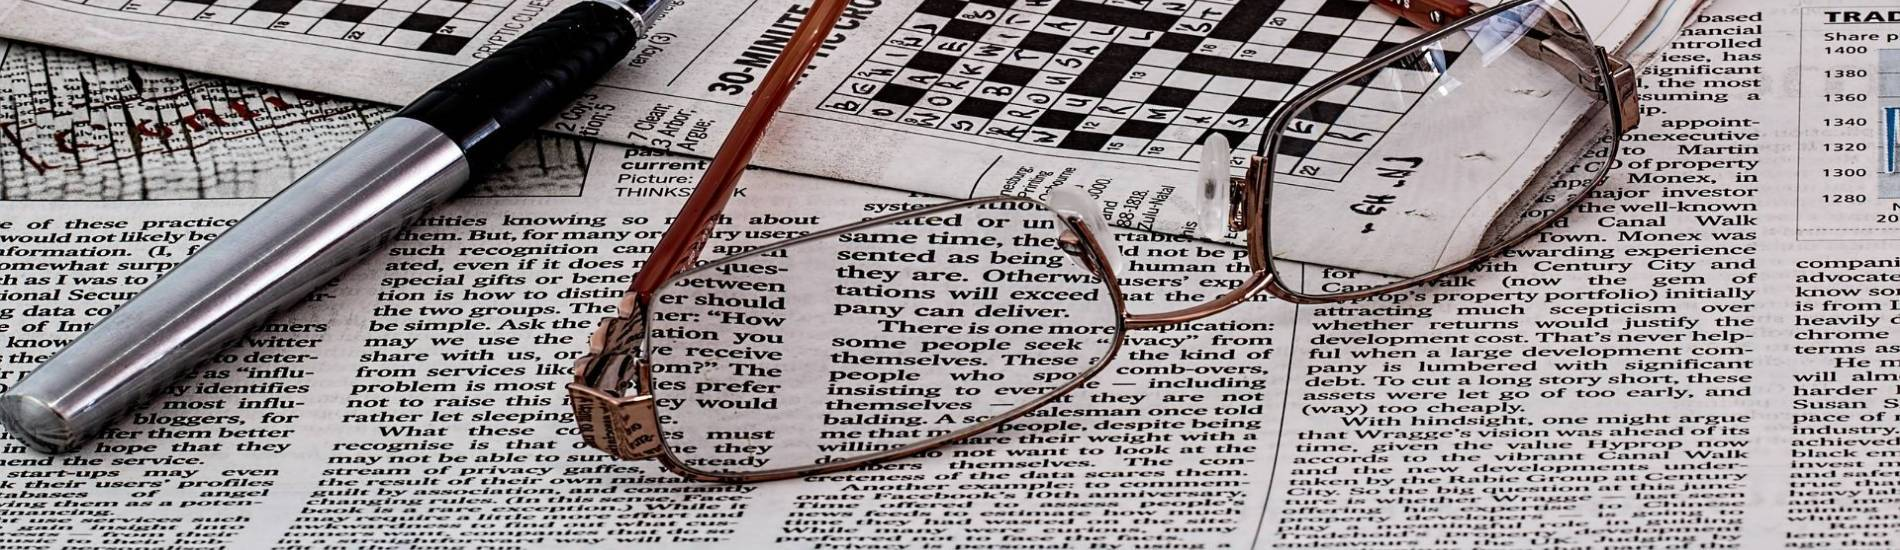 Image of newspaper, crossword puzzle, eyeglasses, and a pen